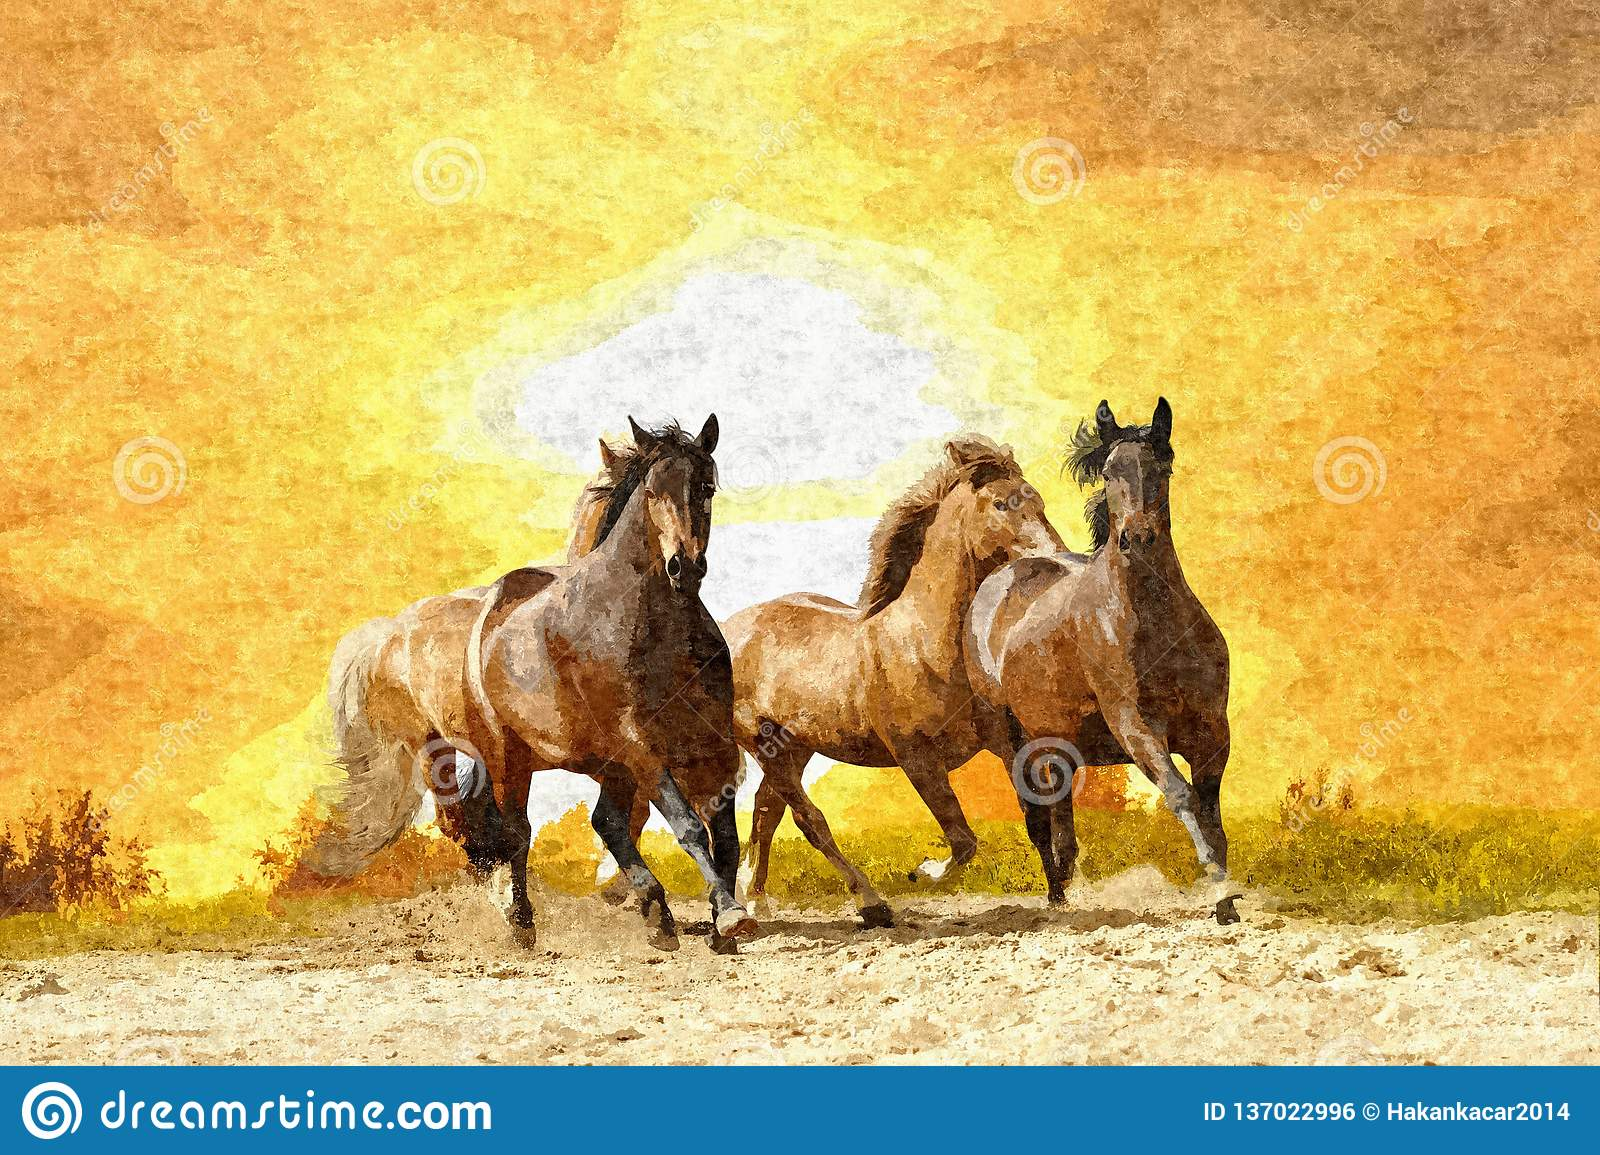 Oil Painting Horse Stock Illustration Illustration Of Color 137022996